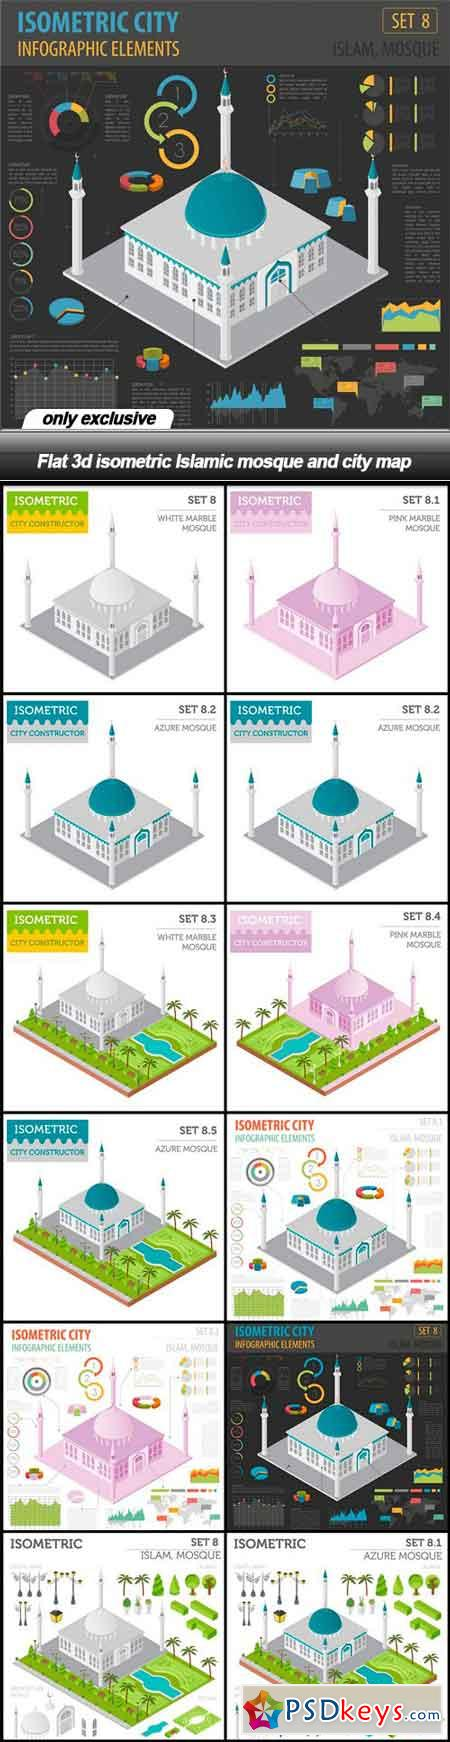 Flat 3d isometric Islamic mosque and city map - 12 EPS